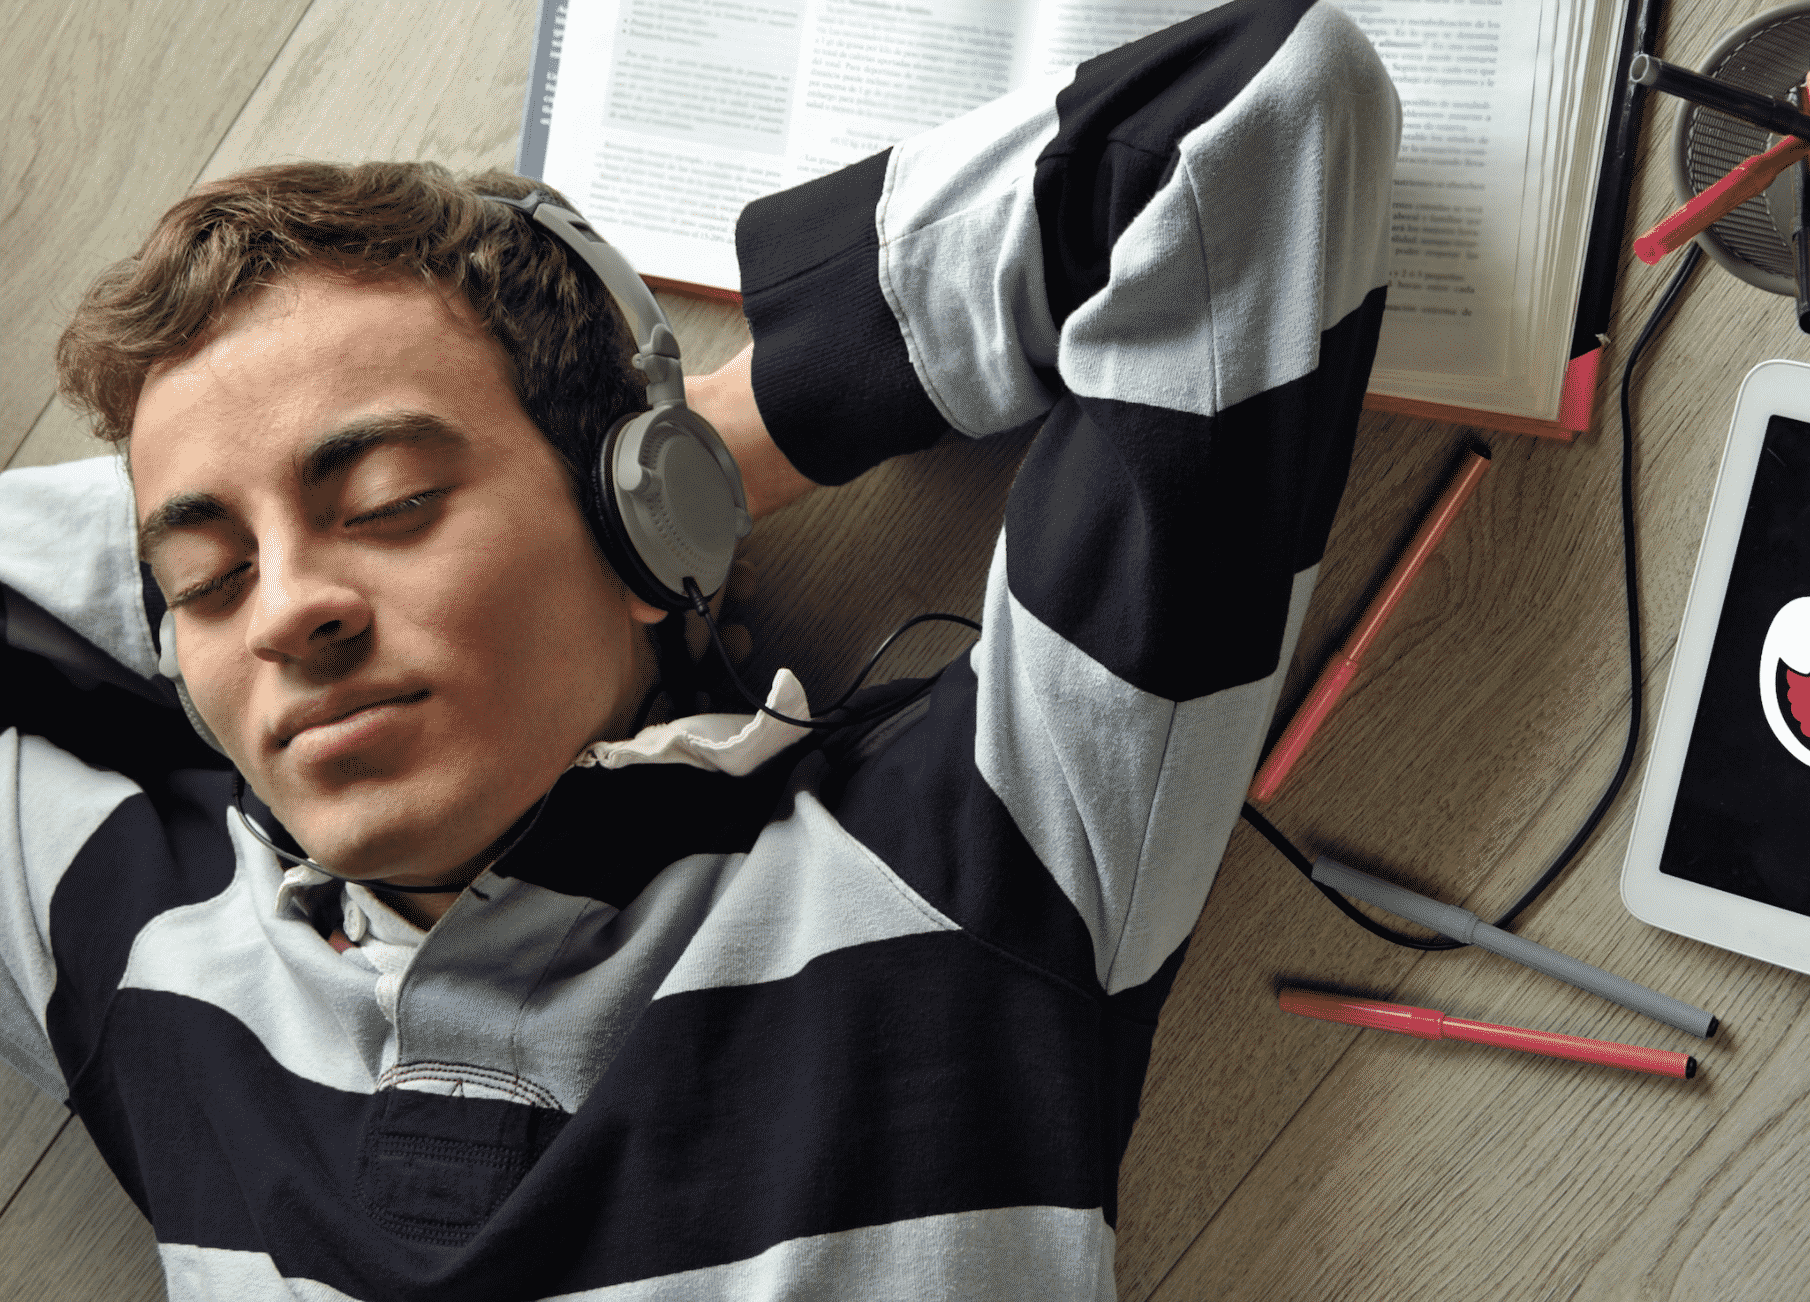 5 Best Apps to Help You Stay Focused When Studying at Home